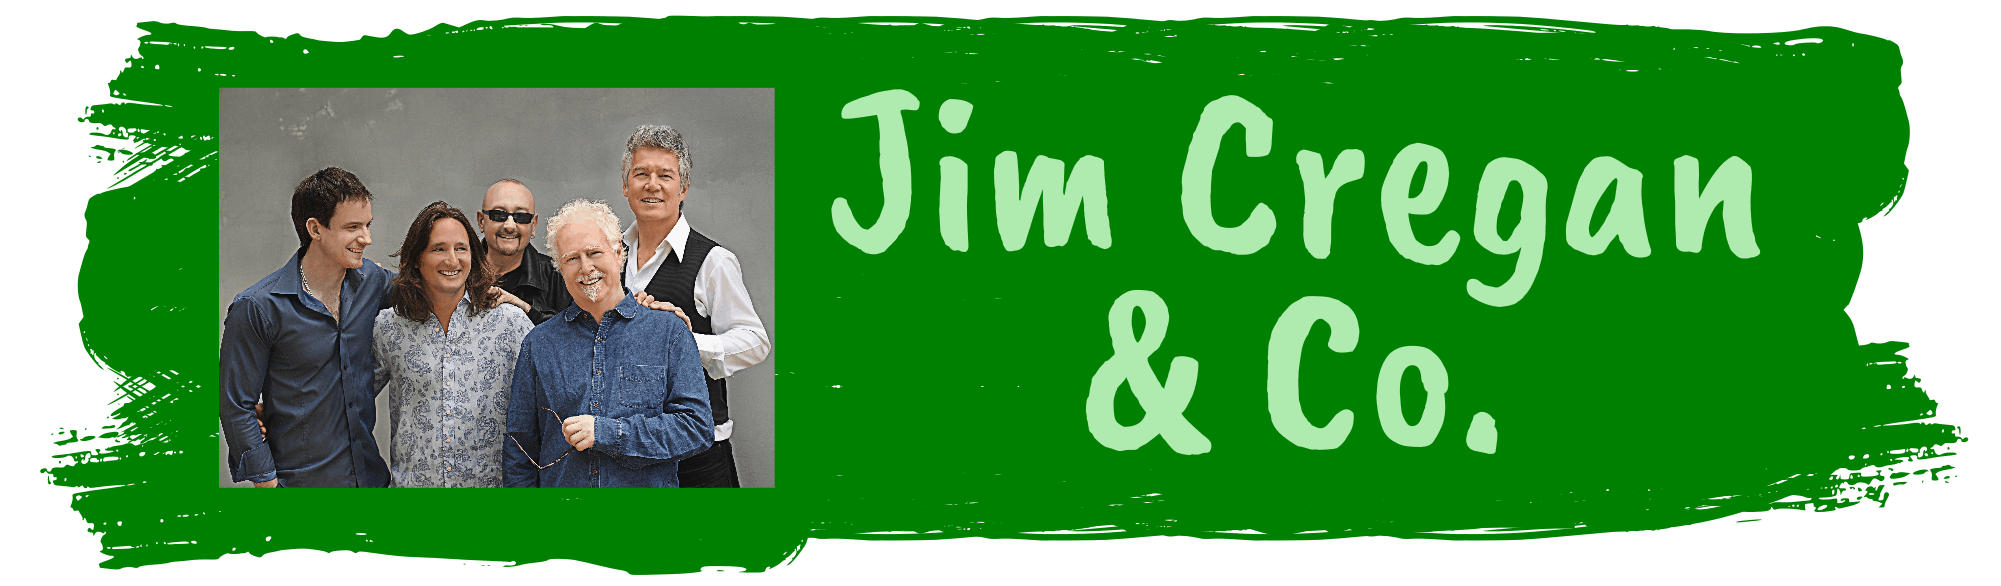 Jim Cregan & Co